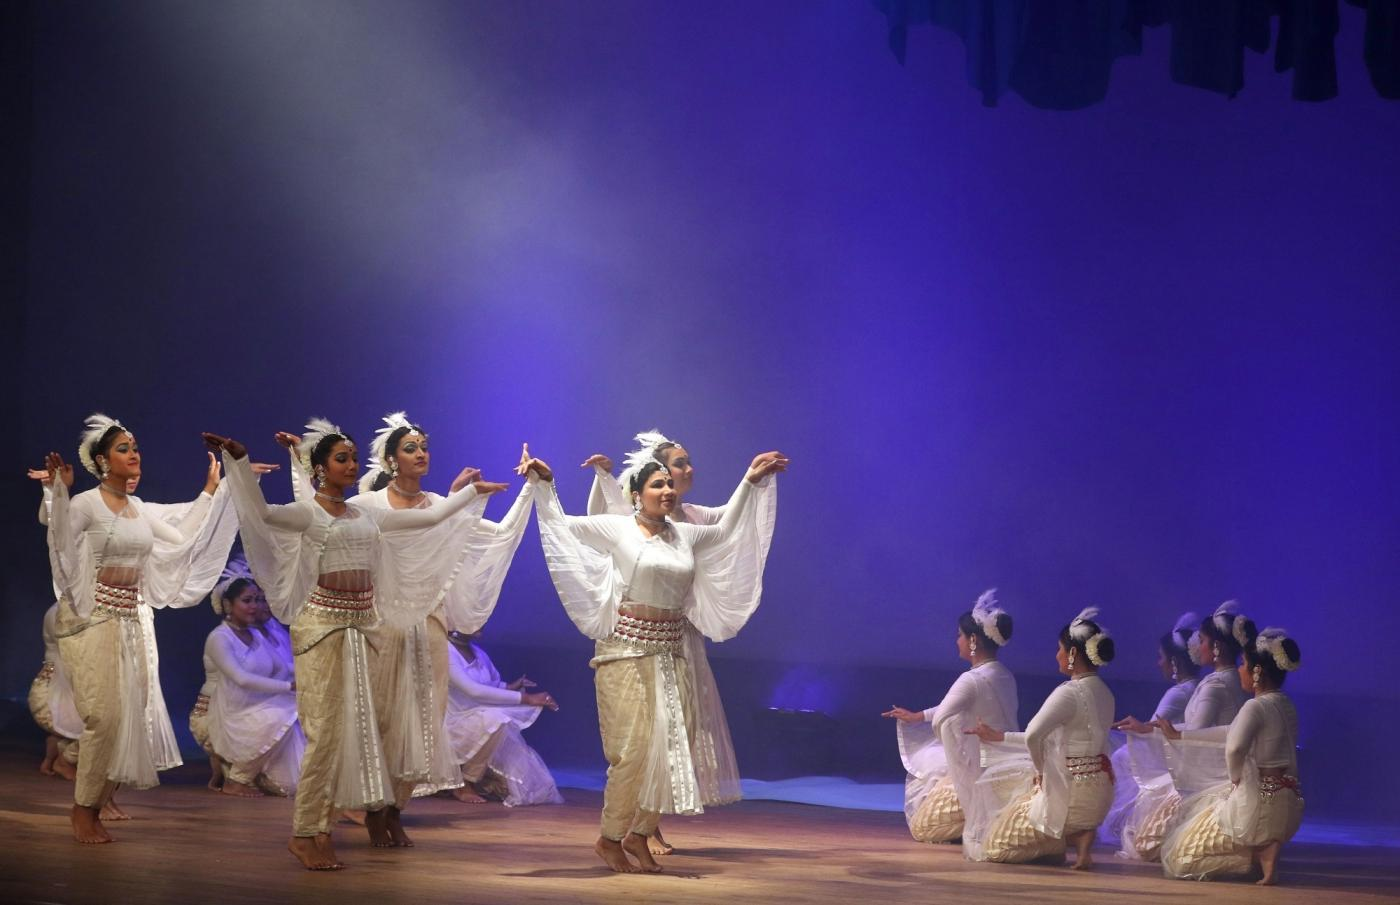 Bengaluru: Artistes perform Hansika, an adaptation of a ballet called Swan Lake, at Chiwdaiah Memorial Hall in Bengaluru on March 31, 2018. (Photo: IANS) by .